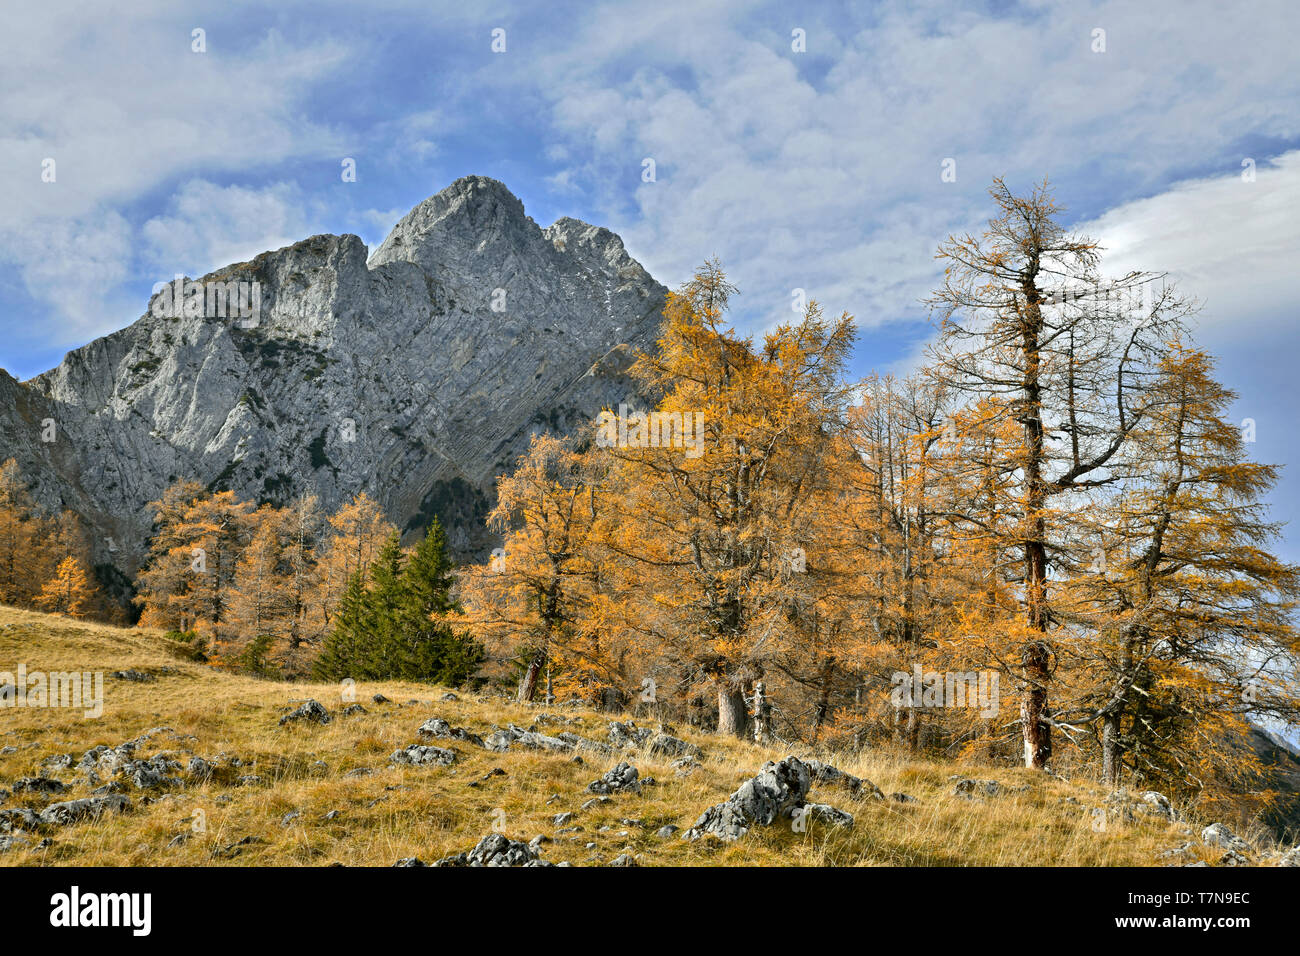 Mountain landscape at the Vomper Joch in autumn: European Larches with the mountain Fiechterspitz in background. Stock Photo